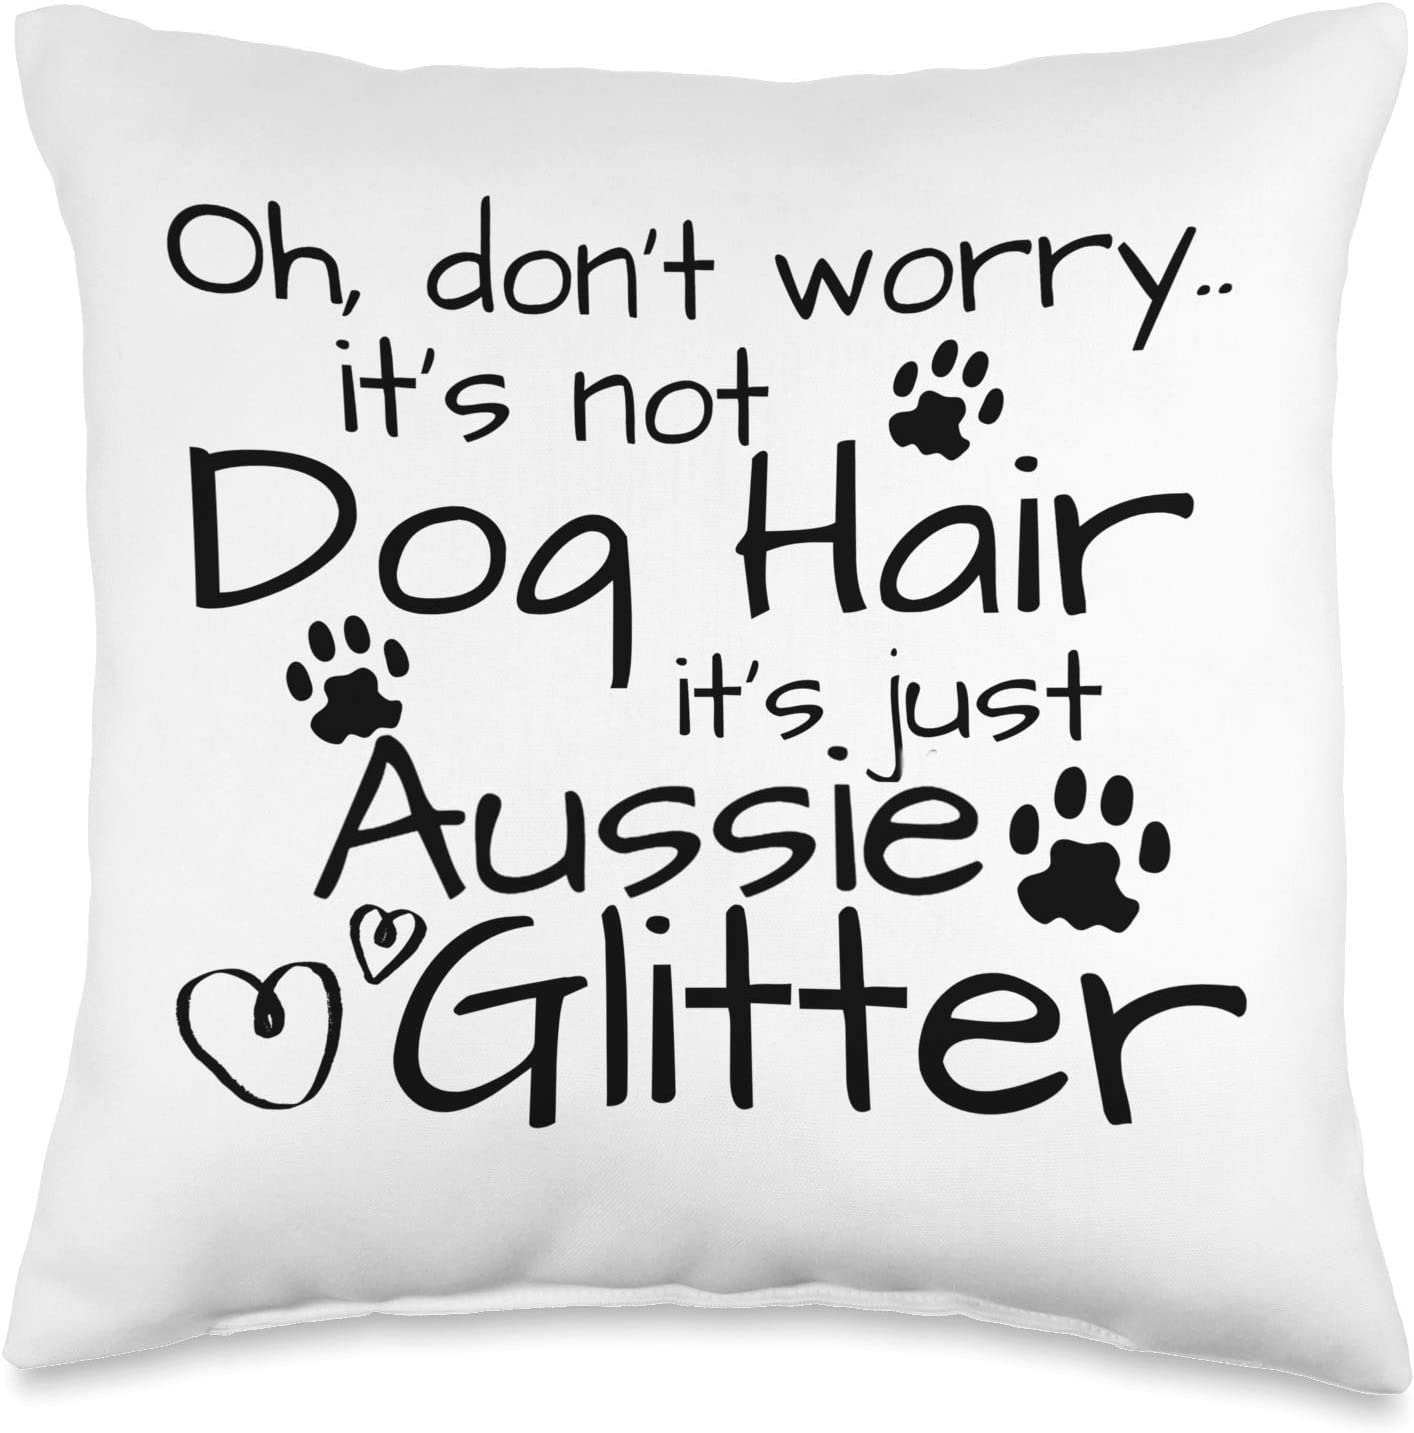 Funny Dog Owner Gifts Lover Aussie Gift lowest price Ideas D Online limited product